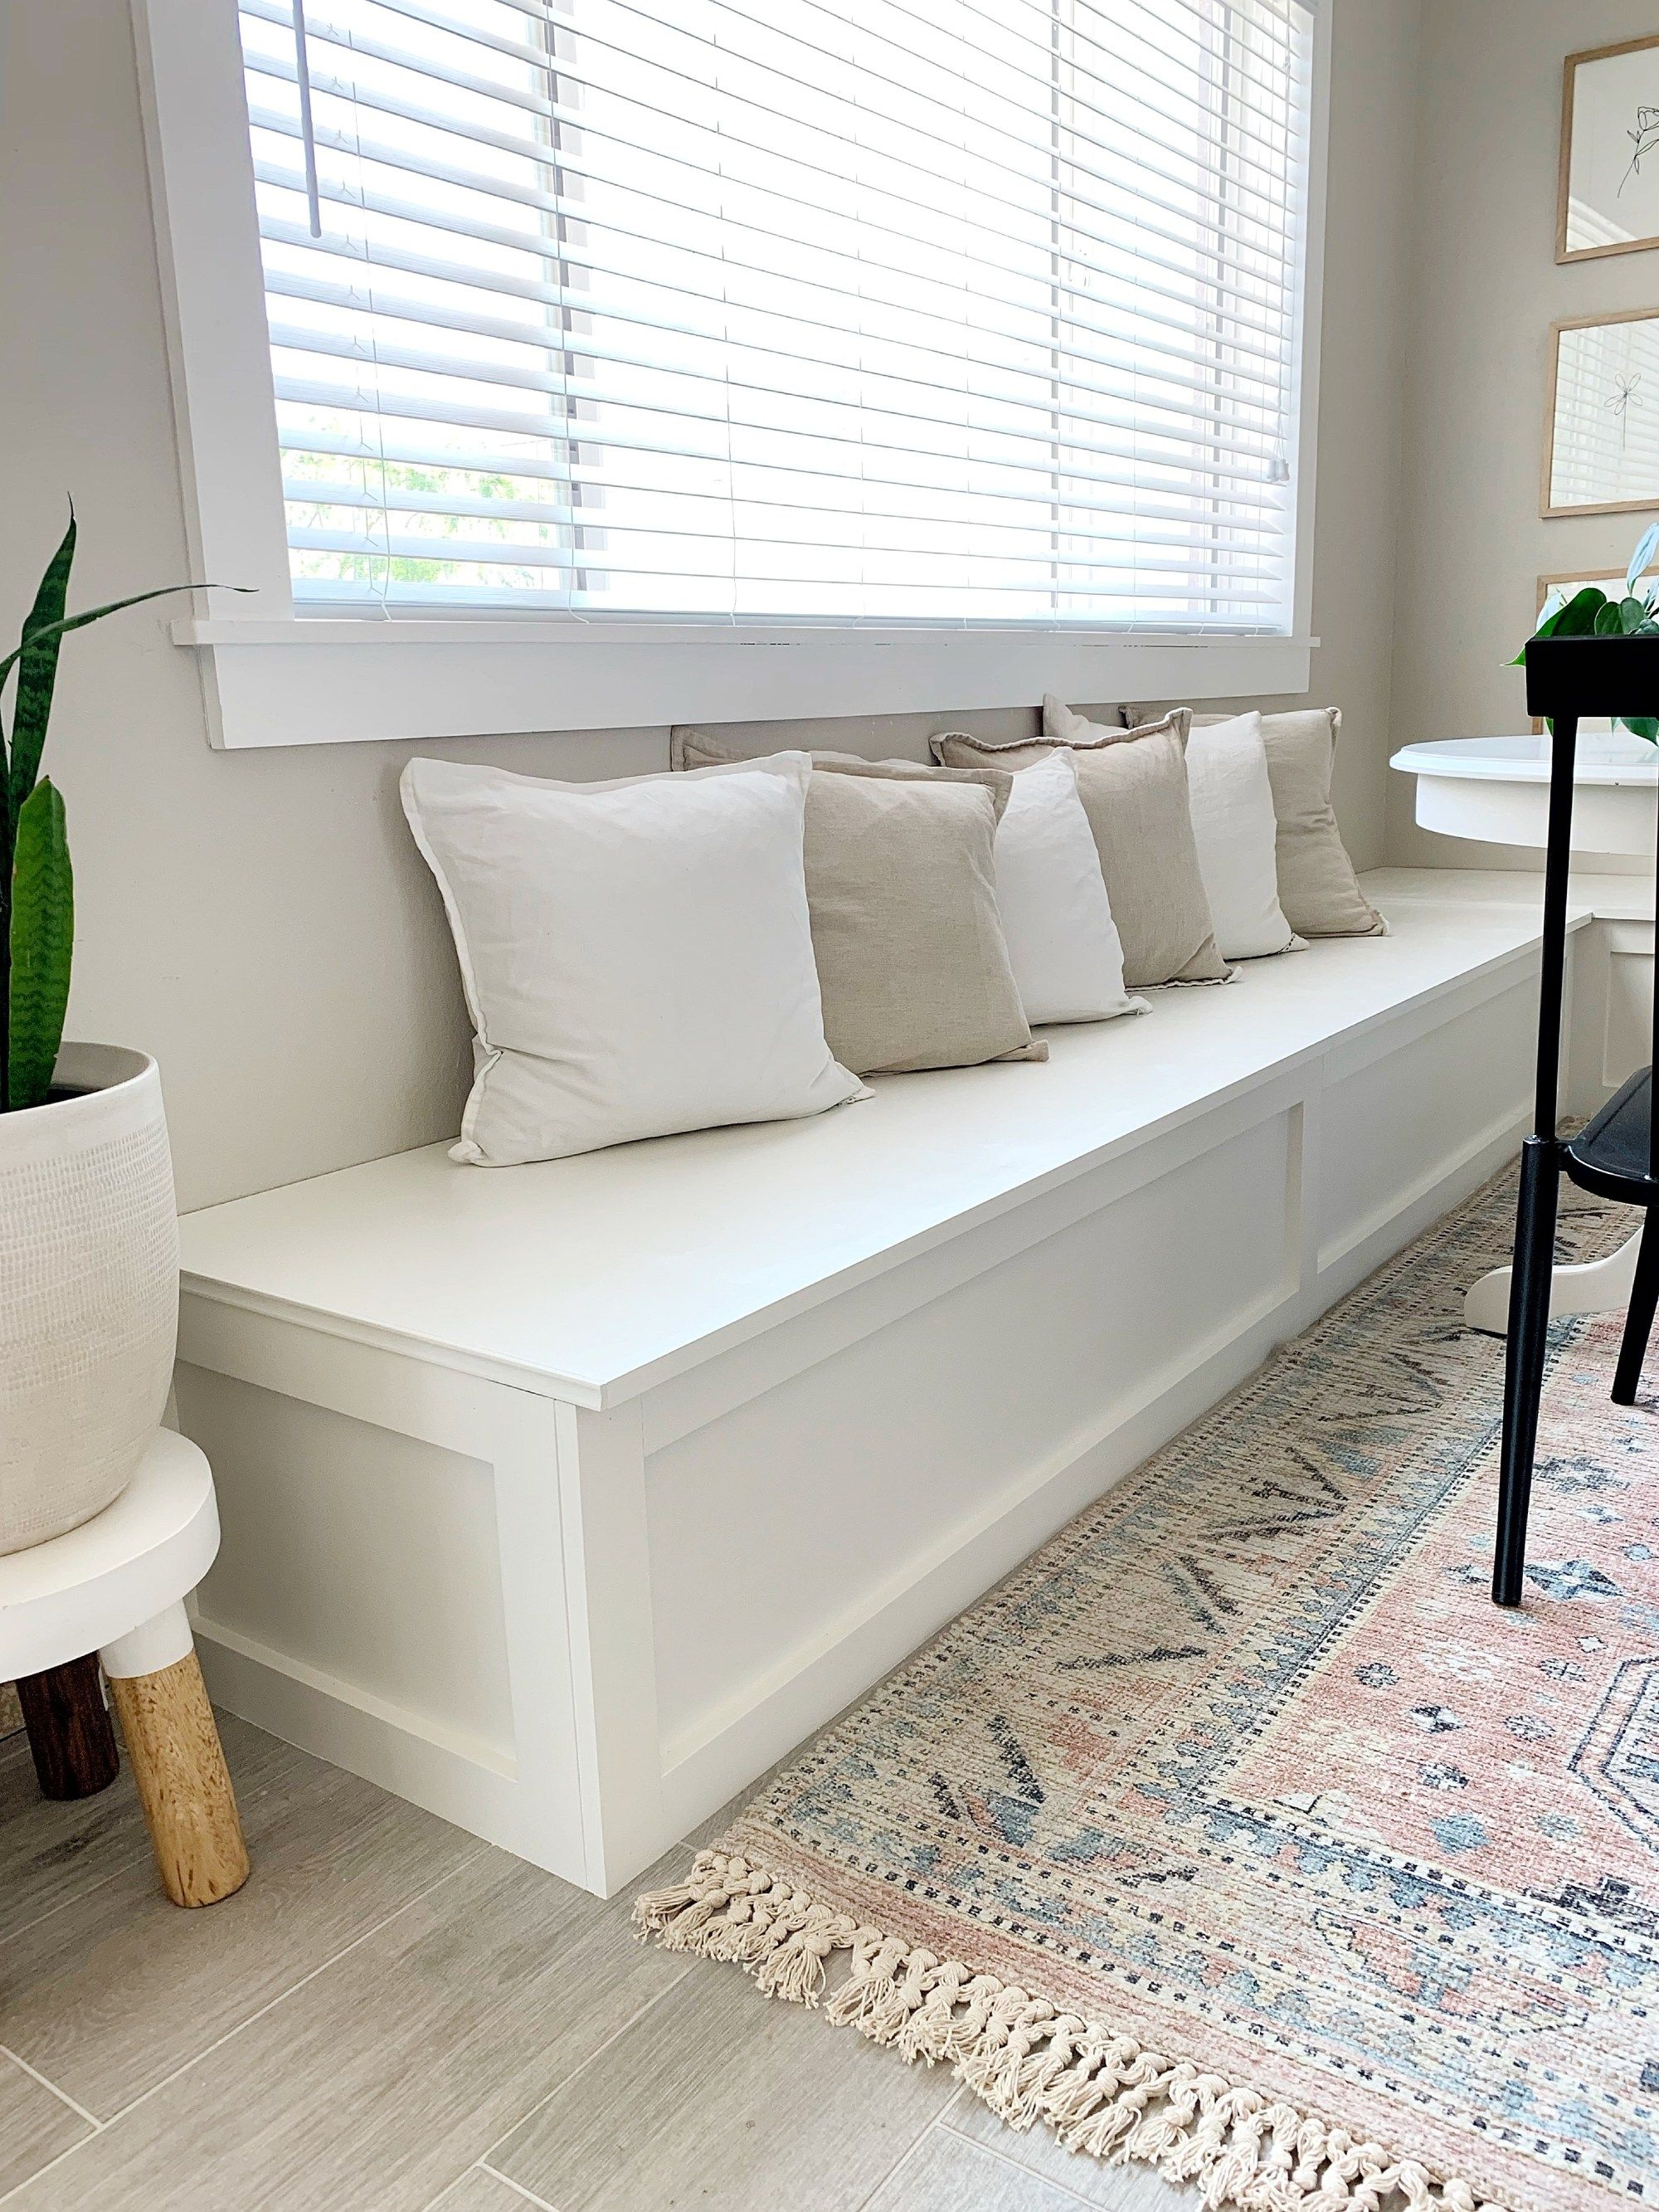 How To Build A Banquette Dining Bench Lemon And Bloom Dining Room Bench Seating Dining Room Bench Storage Bench Seating Build a kitchen bench